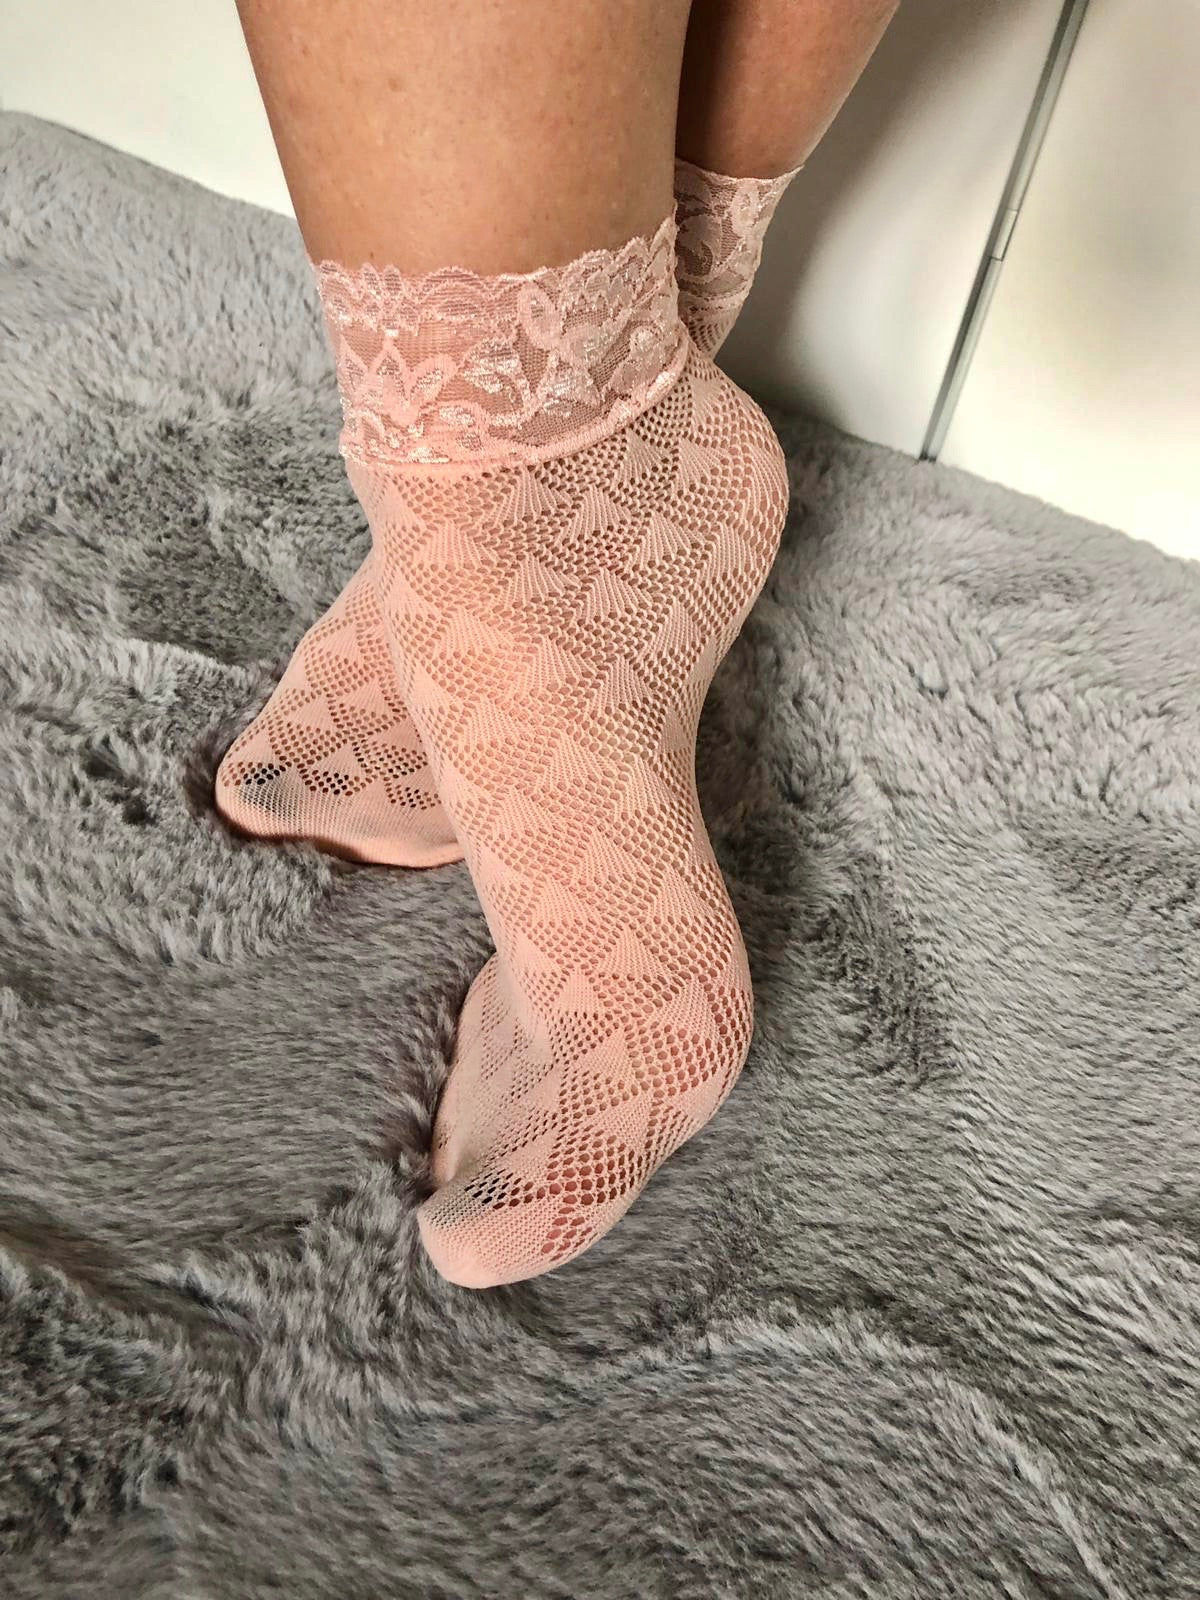 Triangle Beige Mesh Socks - Global Trendz Fashion®